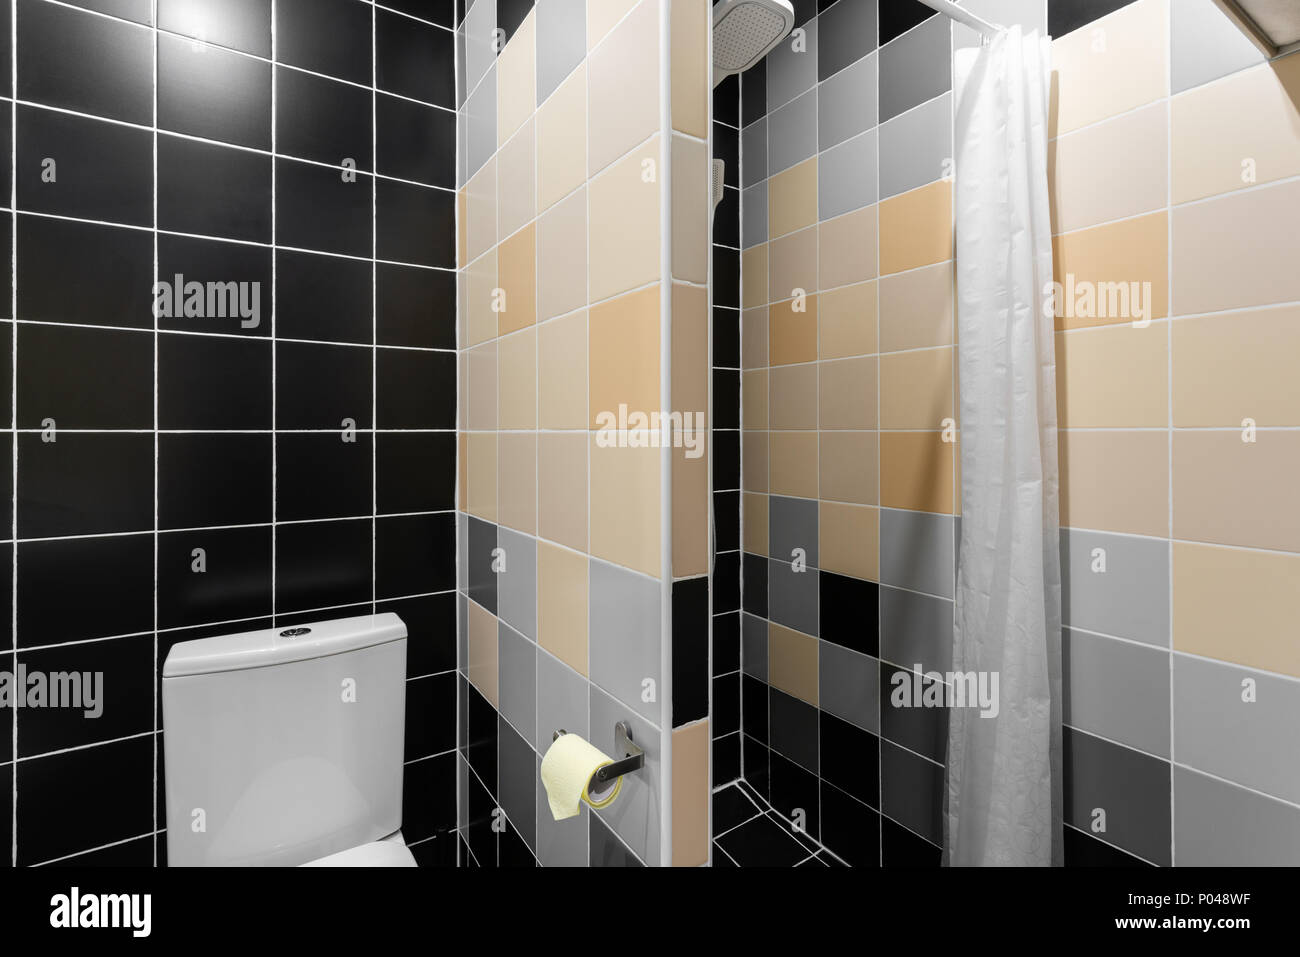 toilet lighting. Bathroom With Shower, Toilet Bowl And Sink. Hotel Standart Bedroom. Simple Stylish Interior. Interior Lighting